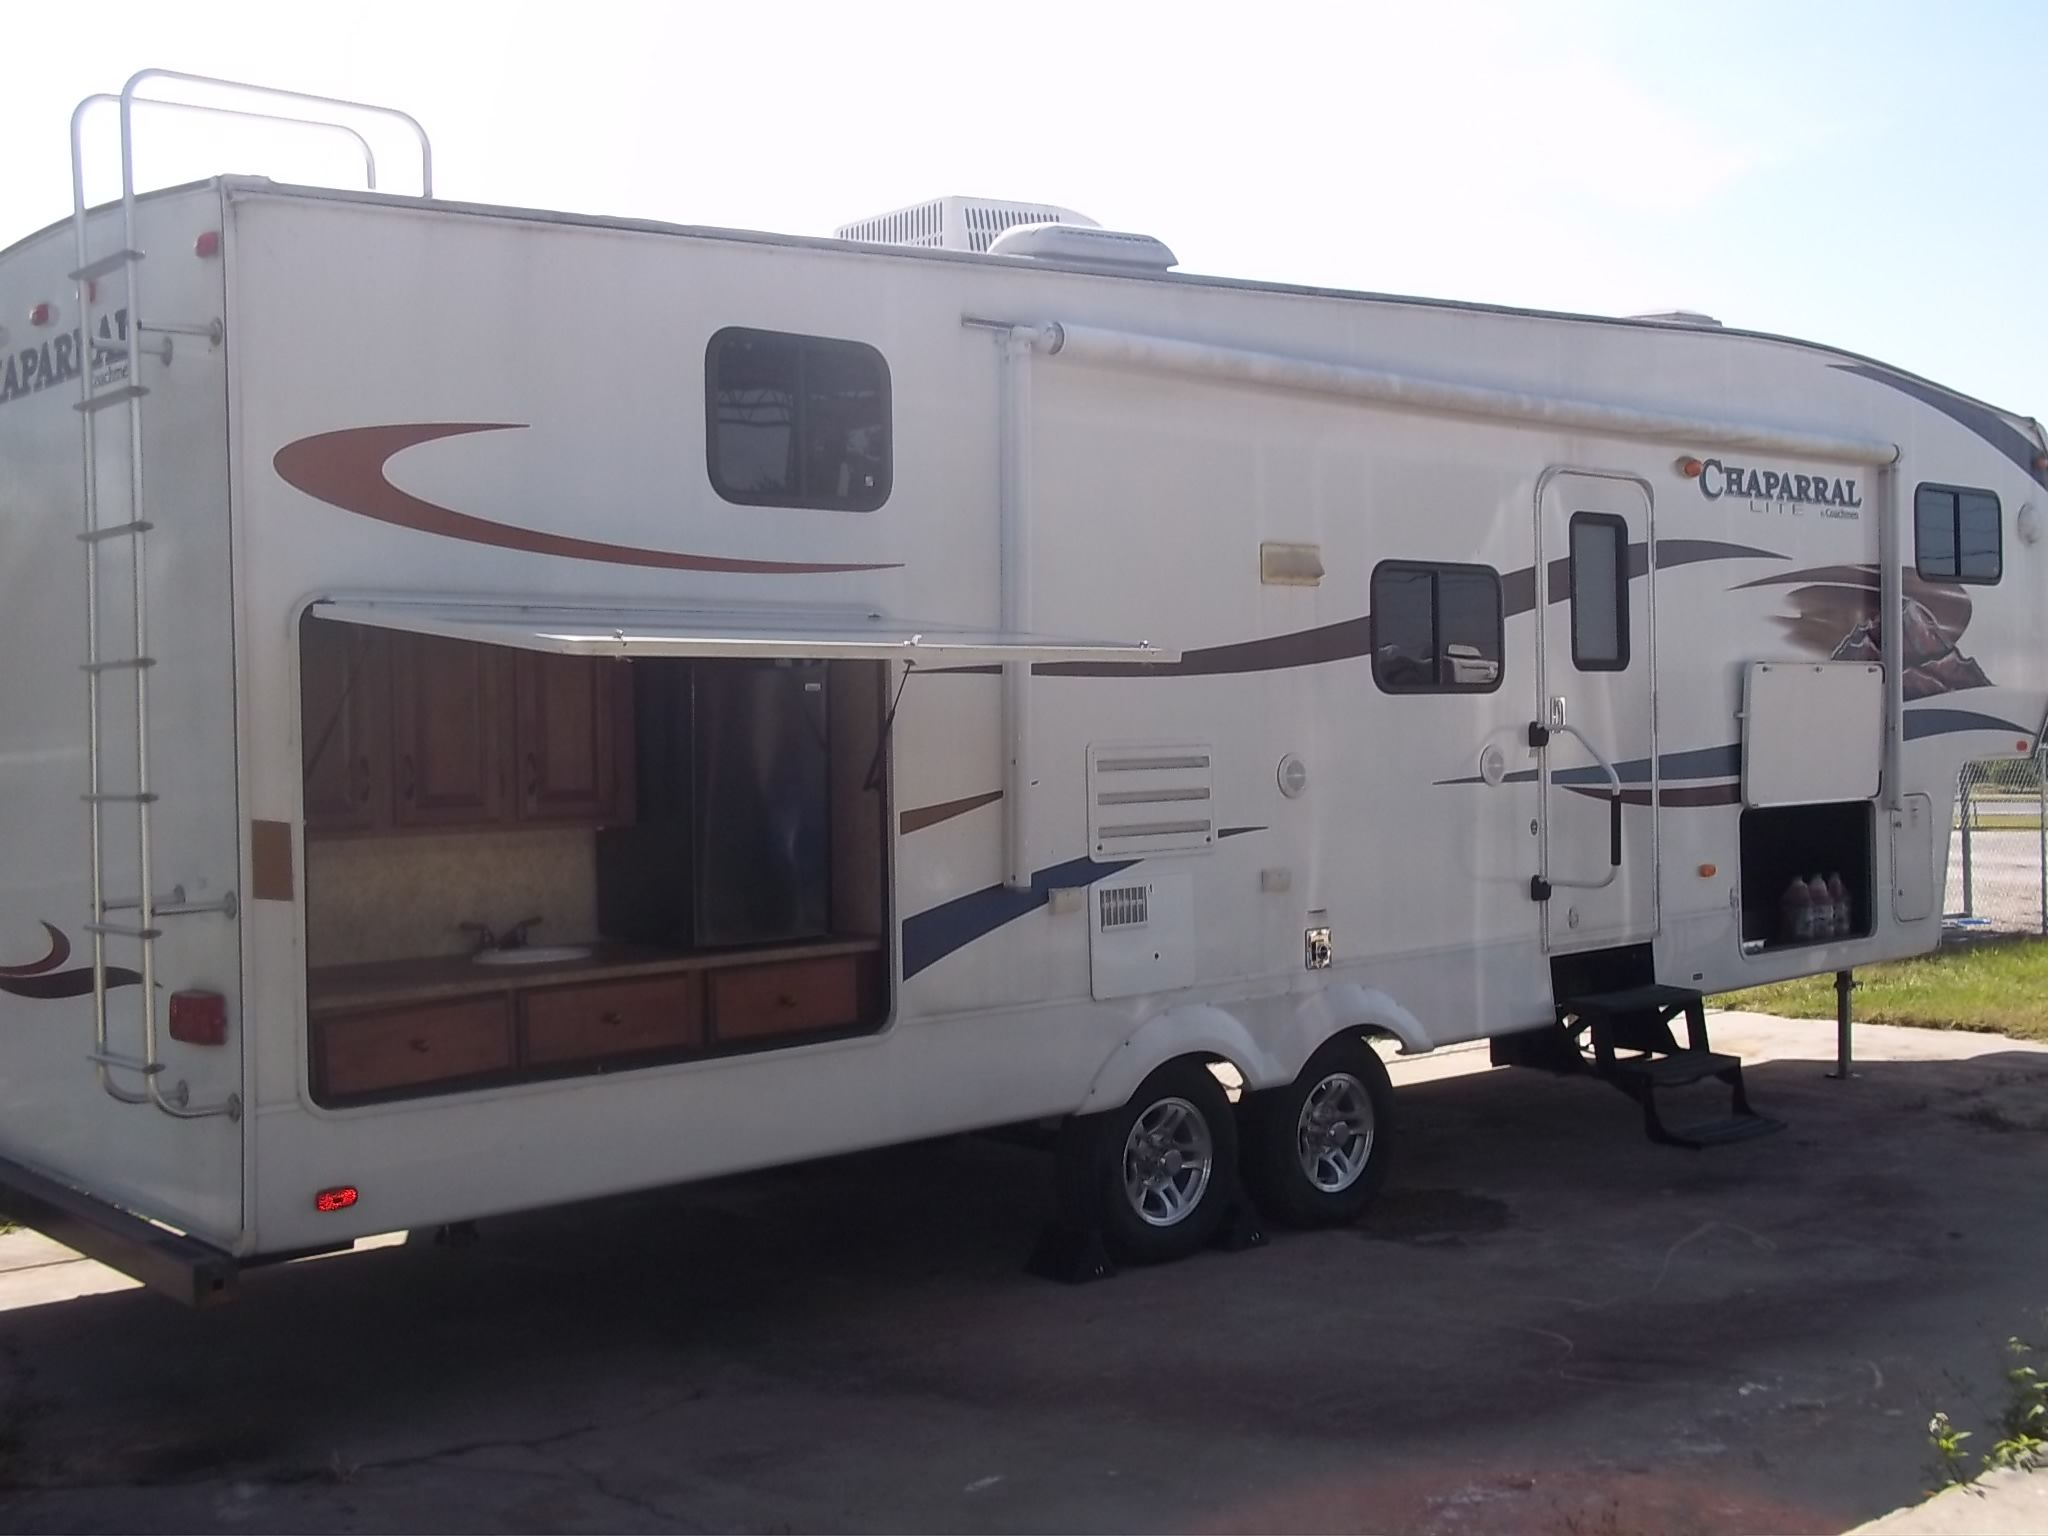 Tampa Futon Sofa Bed Sears Toronto Beds 2011 Coachmen Chaparral 269bhs 5th-wheel Rv For Sale By ...